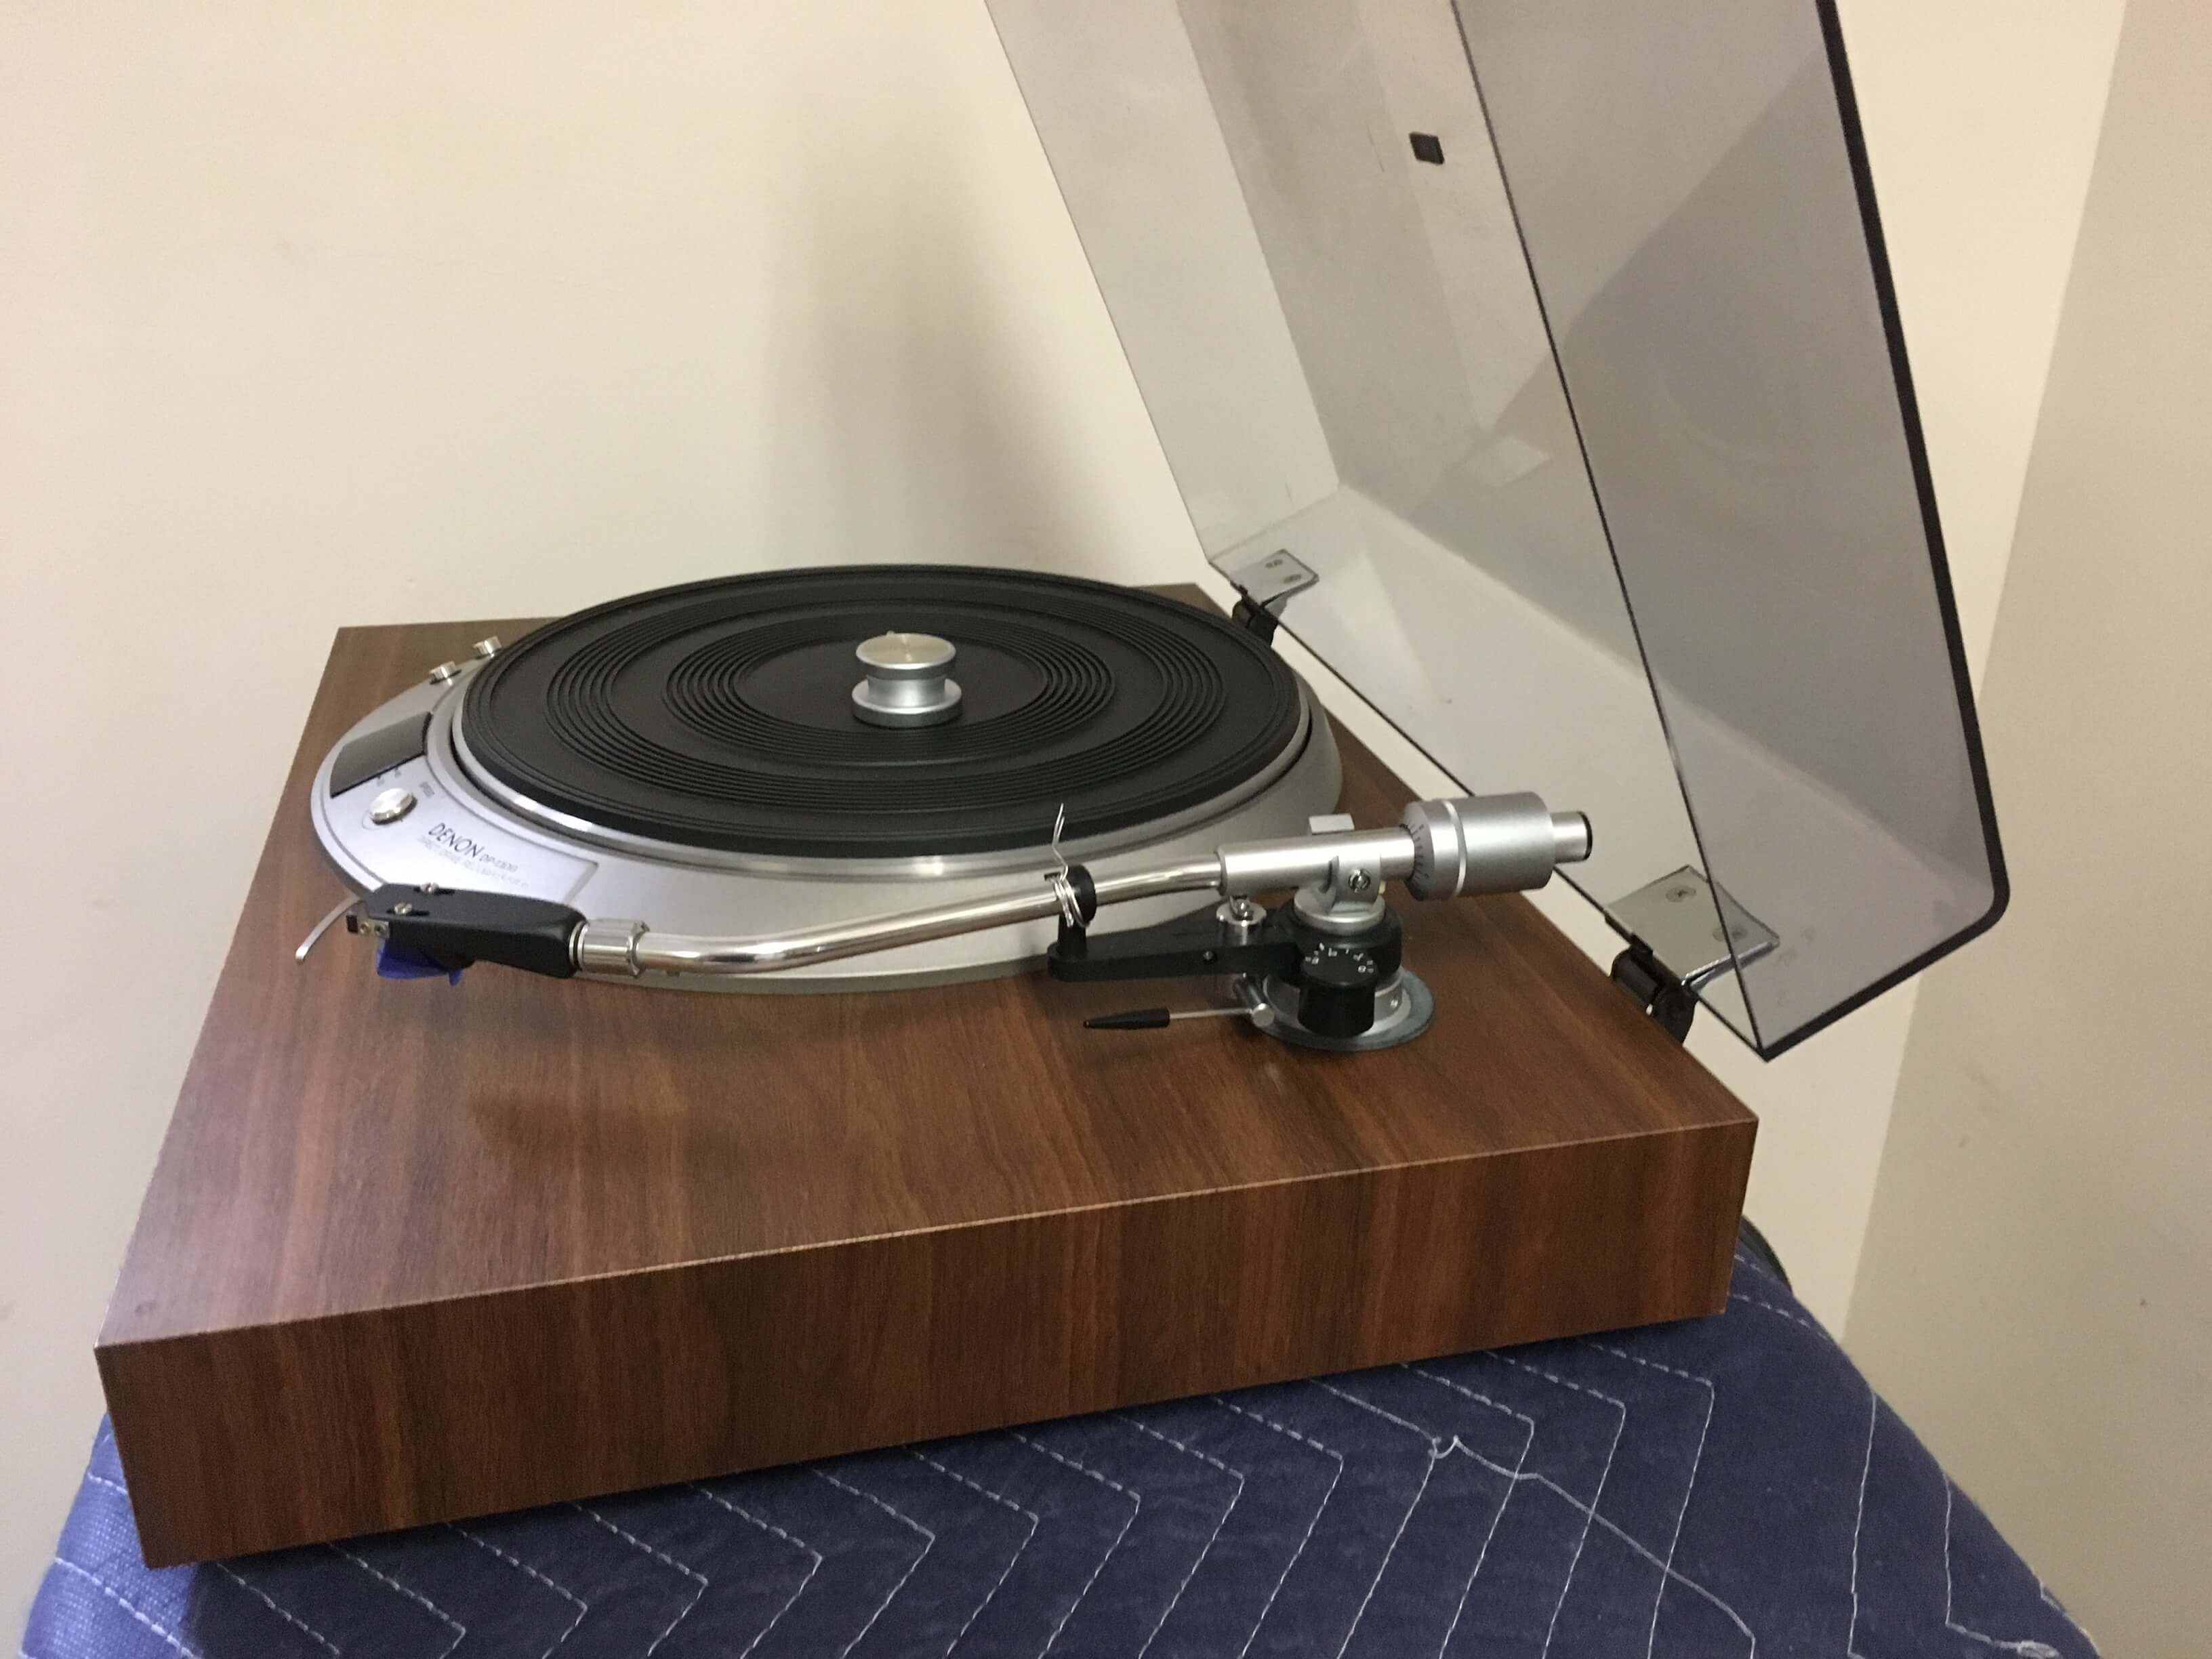 Denon DP-1100 direct drive turntable